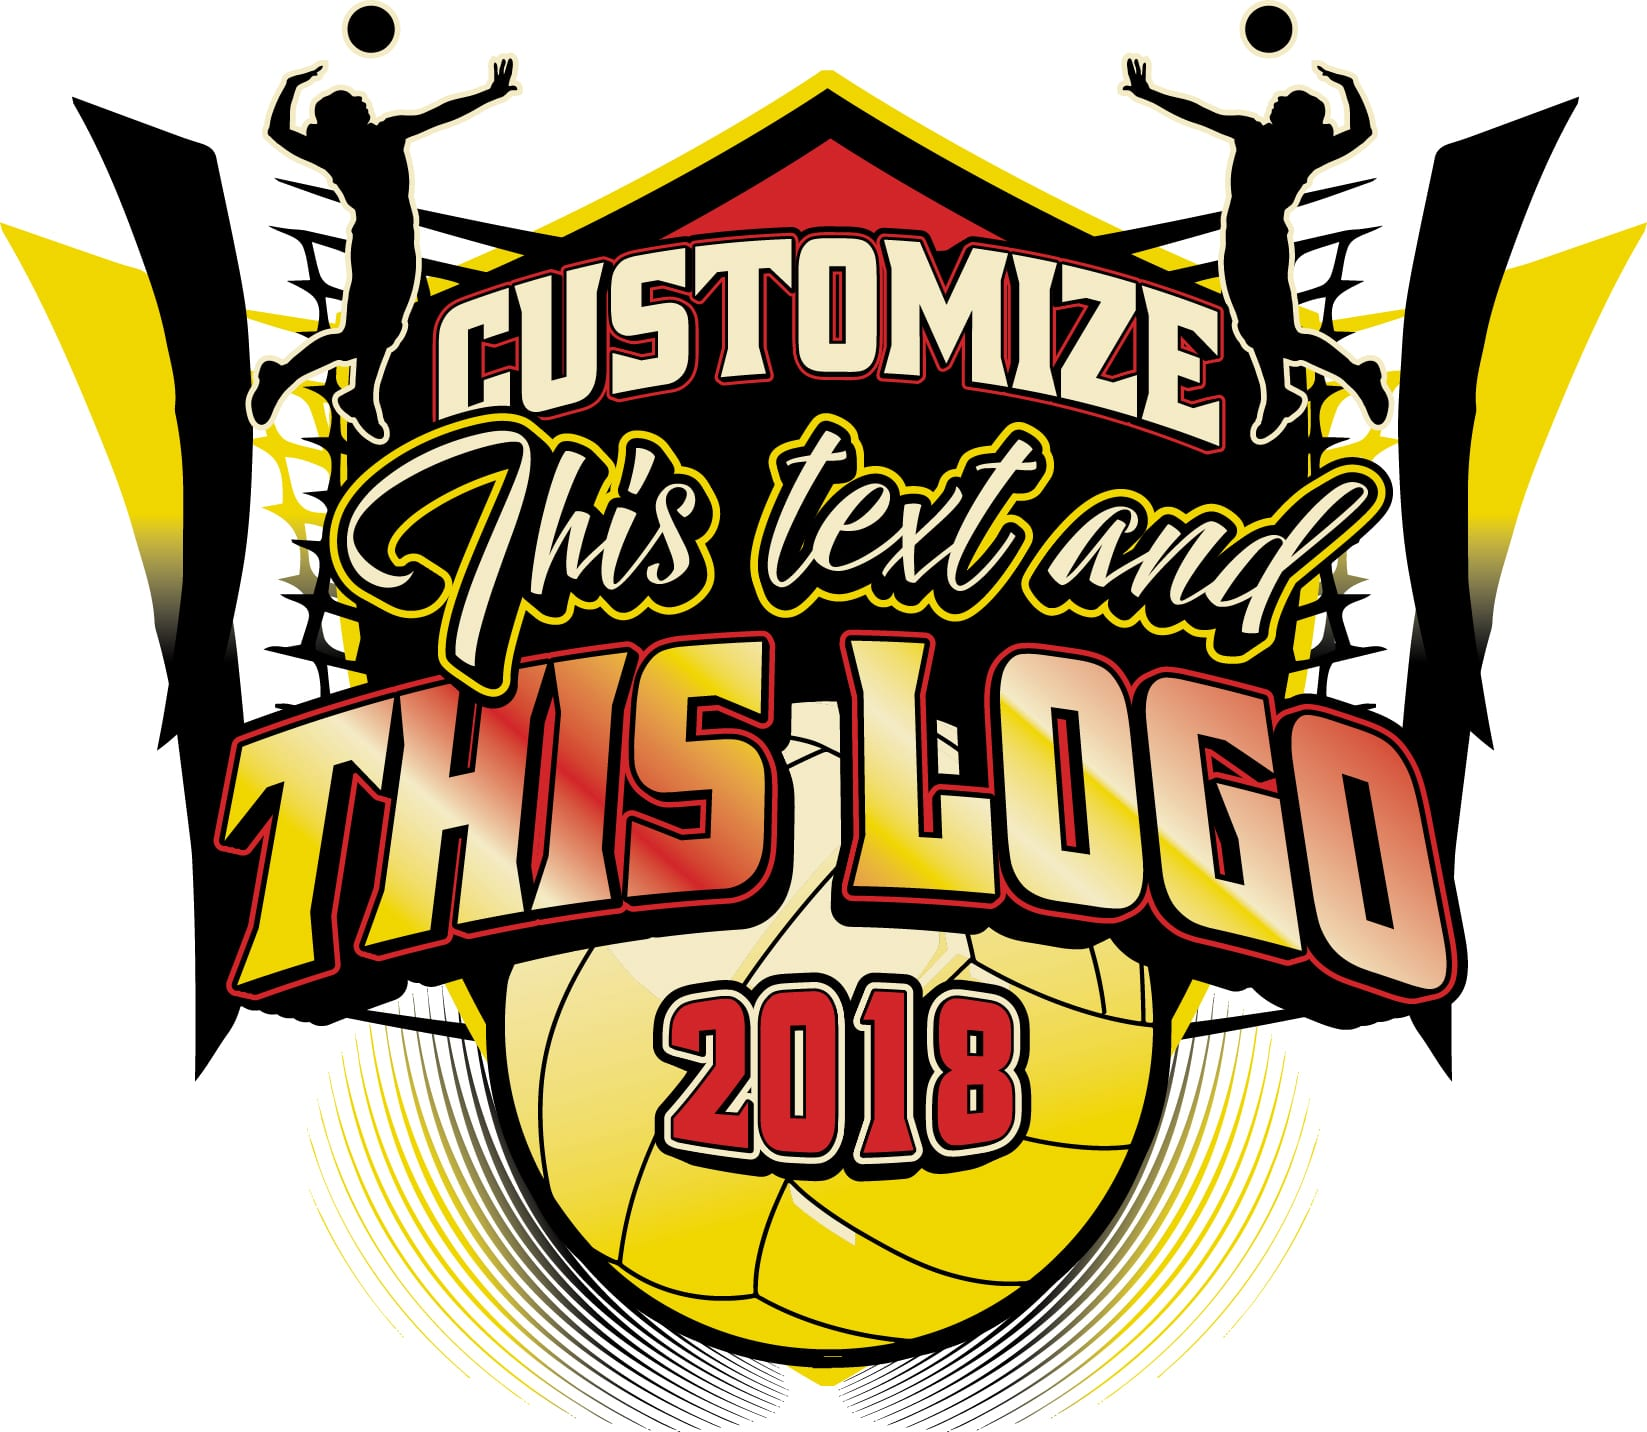 Volleyball T Shirt Logo Design With Adjustable Text And All